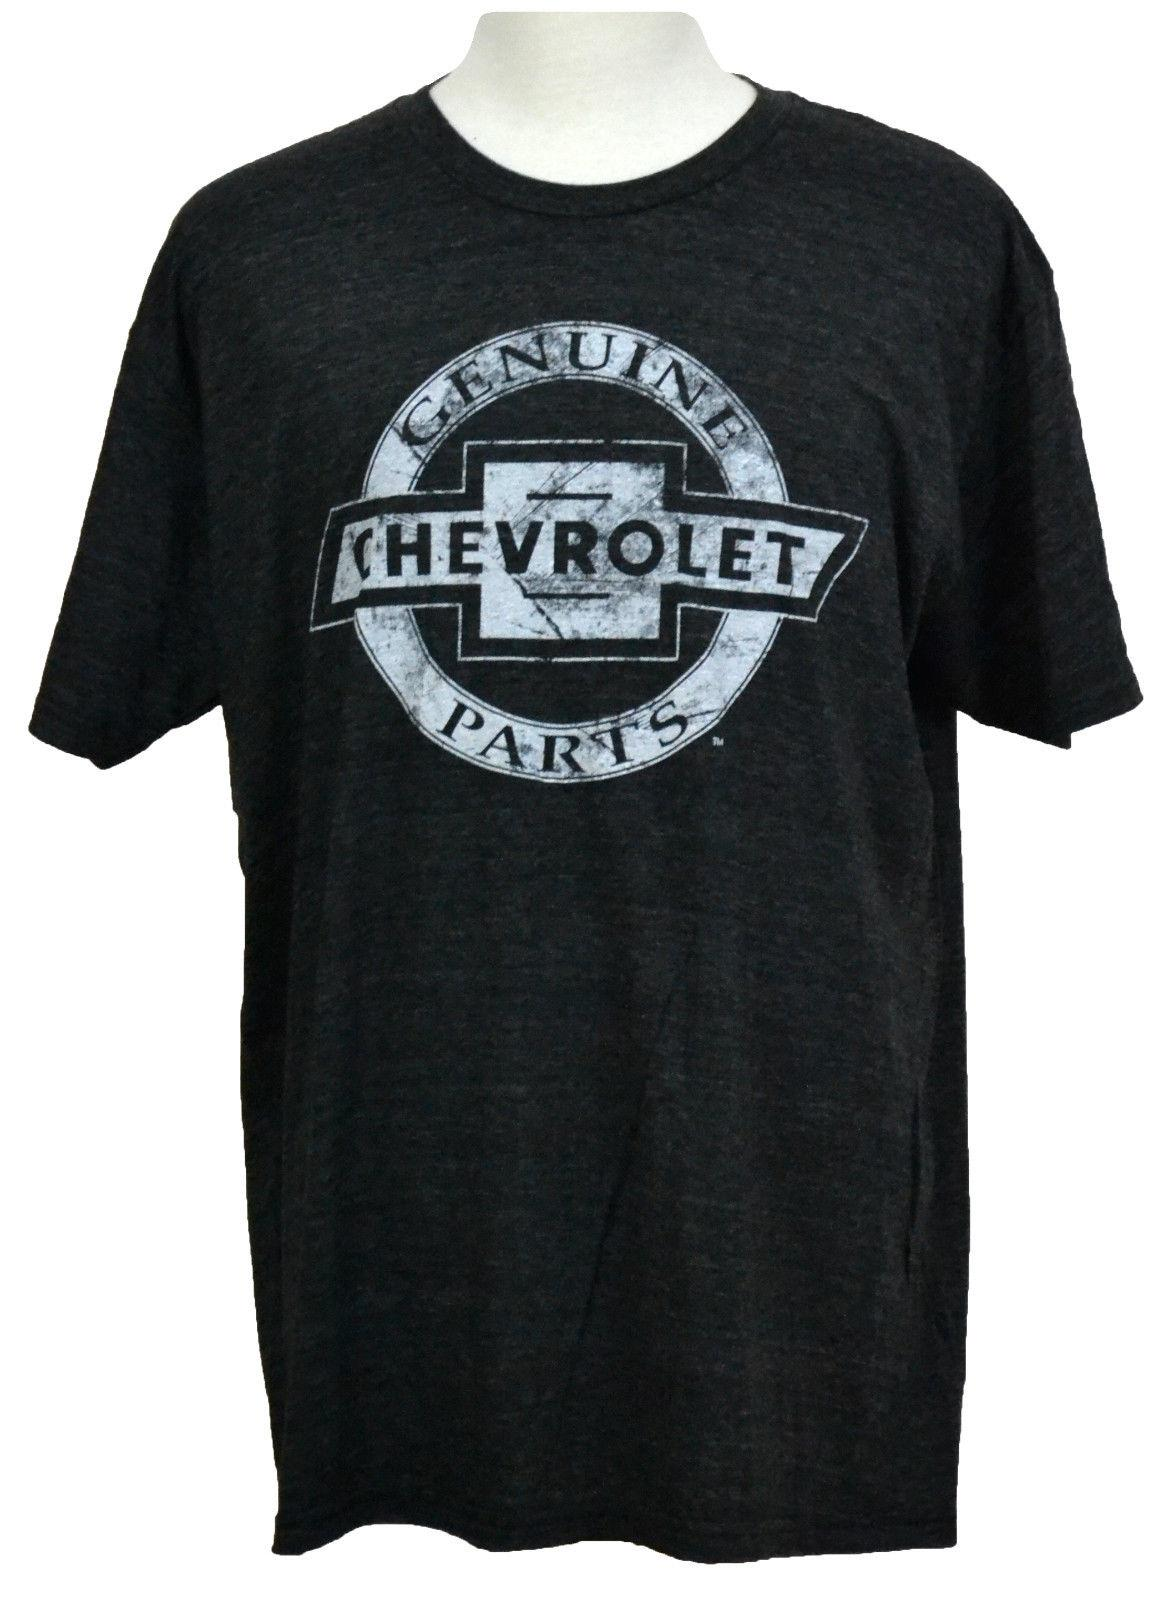 CLEARANCE CHEVROLET GENUINE PARTS MENS CHARCOAL CHEVY TEE SHIRT